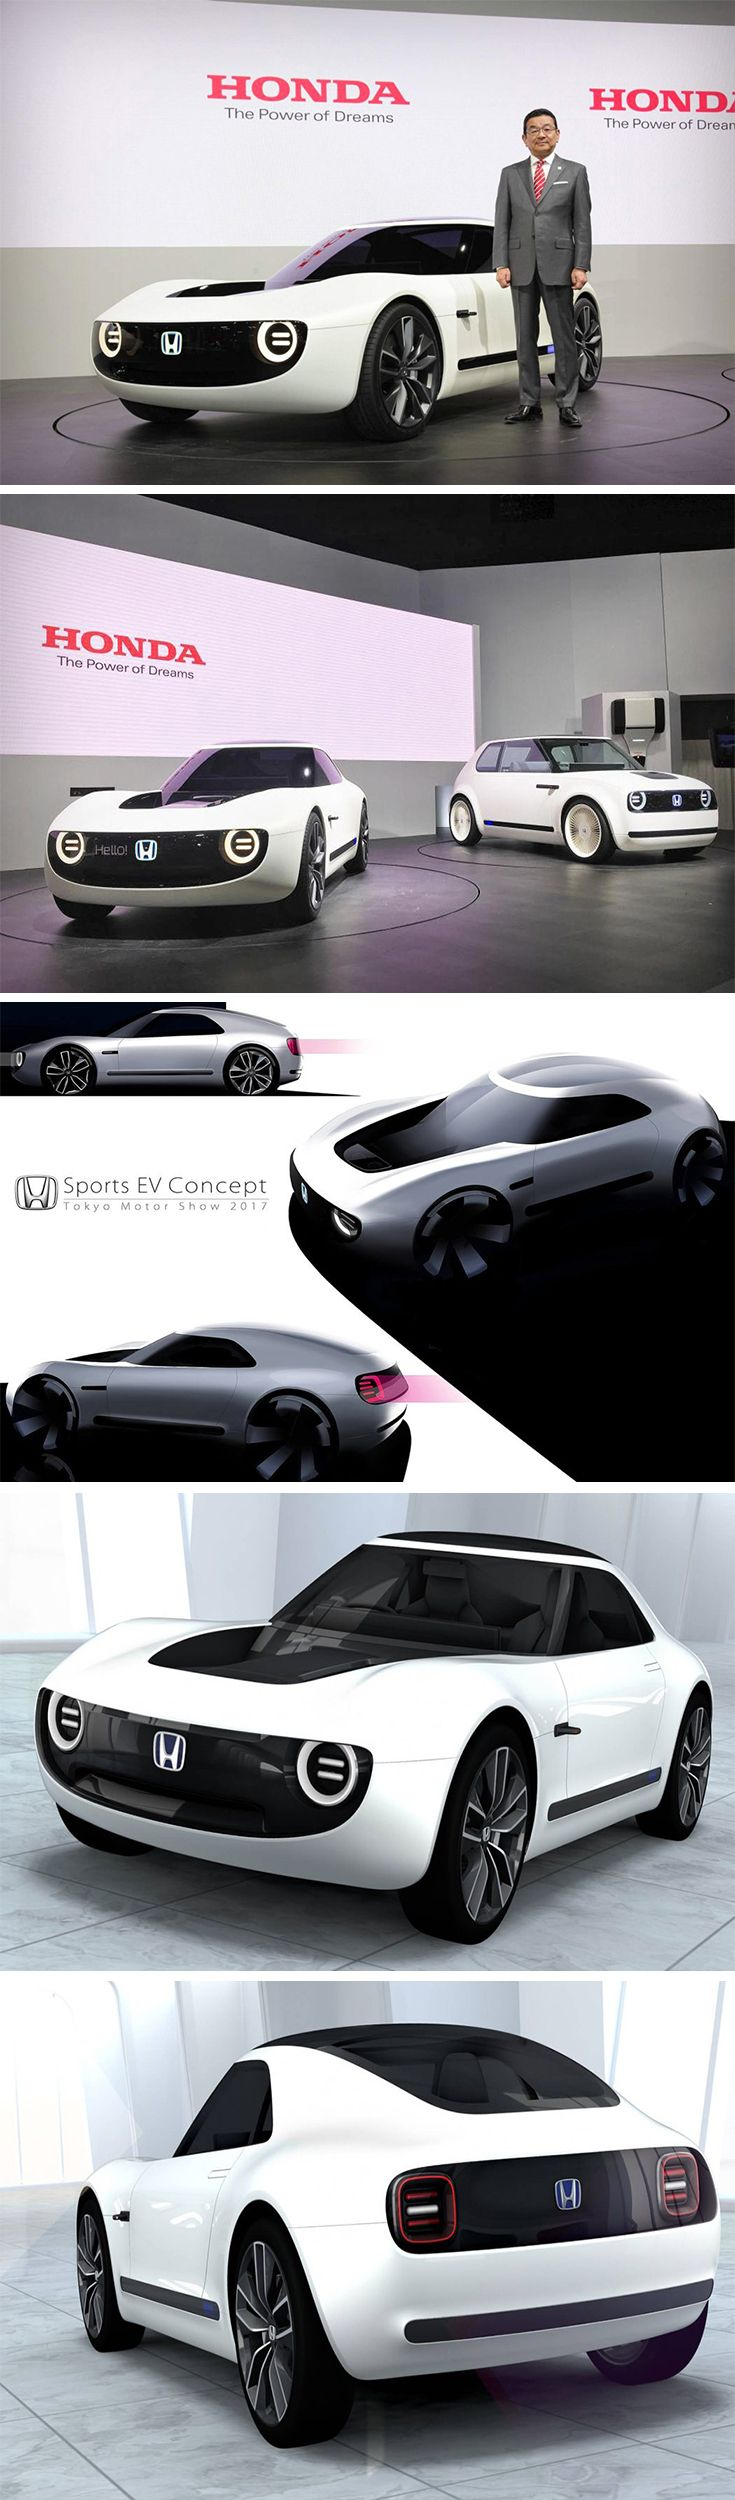 The Manta Three Wheeler Amphibious Concept Vehicle Has An Electric Motor On  Each Of The Re... | Autocycles | Pinterest | Vehicle, Third And Amphibious  ...